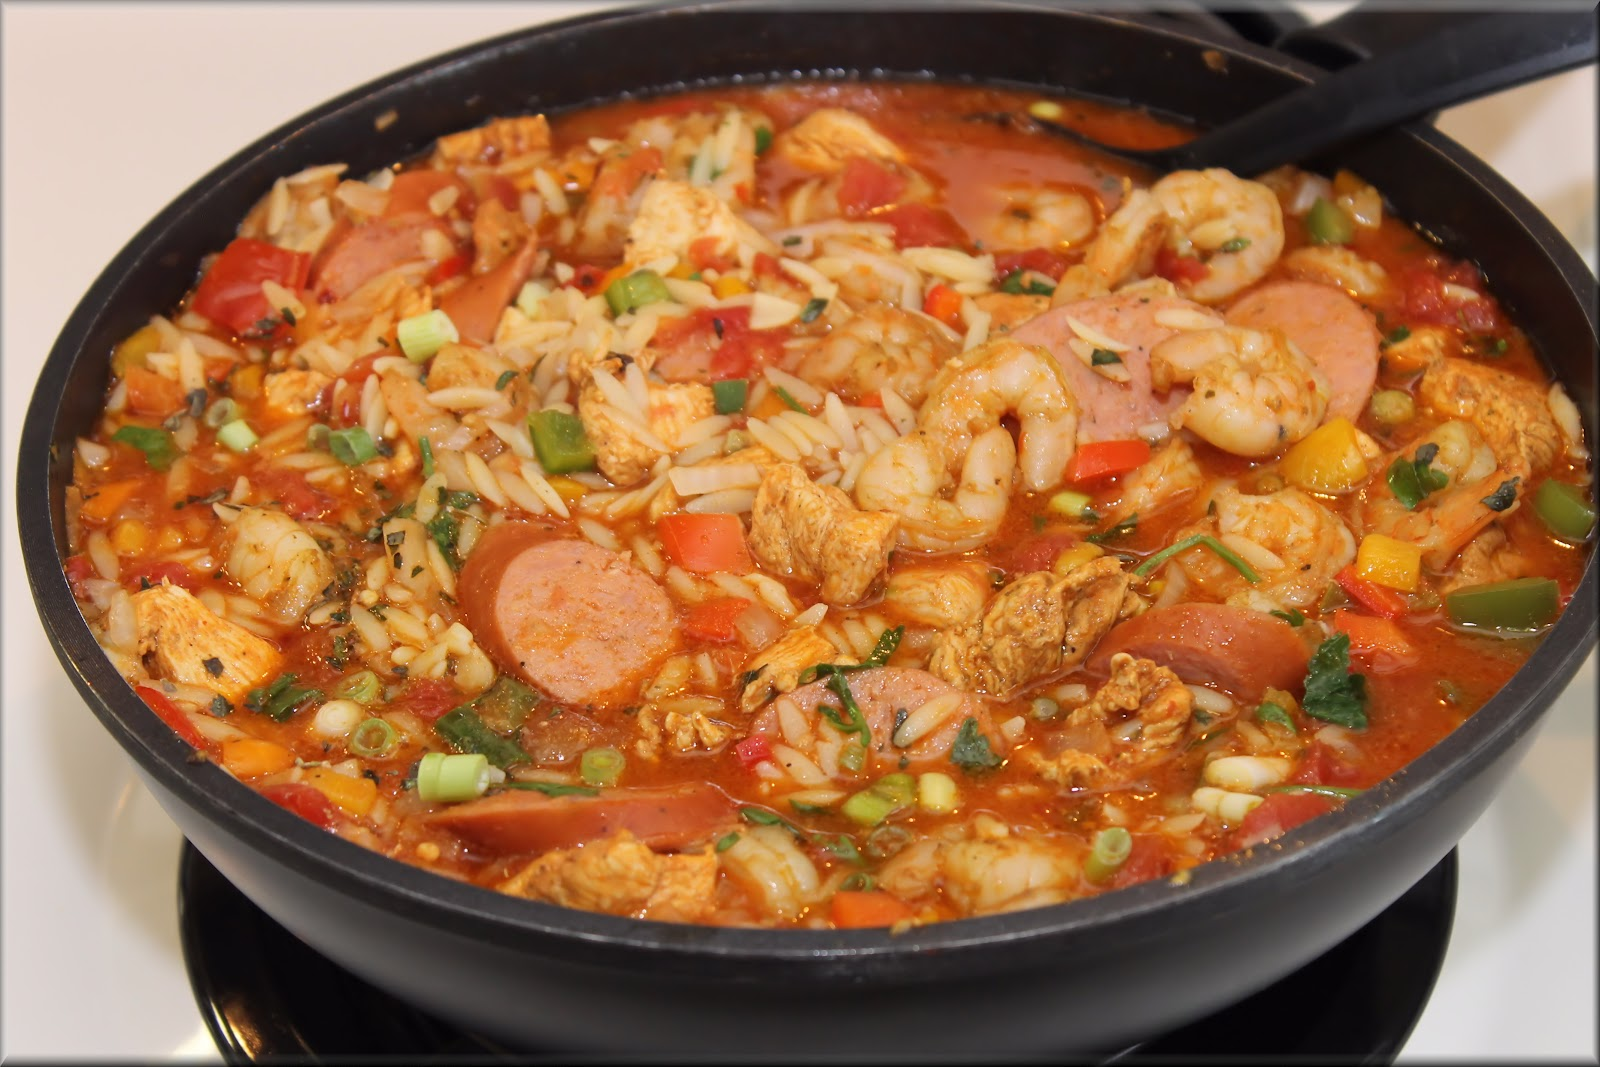 CW's Cafe Today - From Pantry To Table: Jambalaya With a Orzo Twist